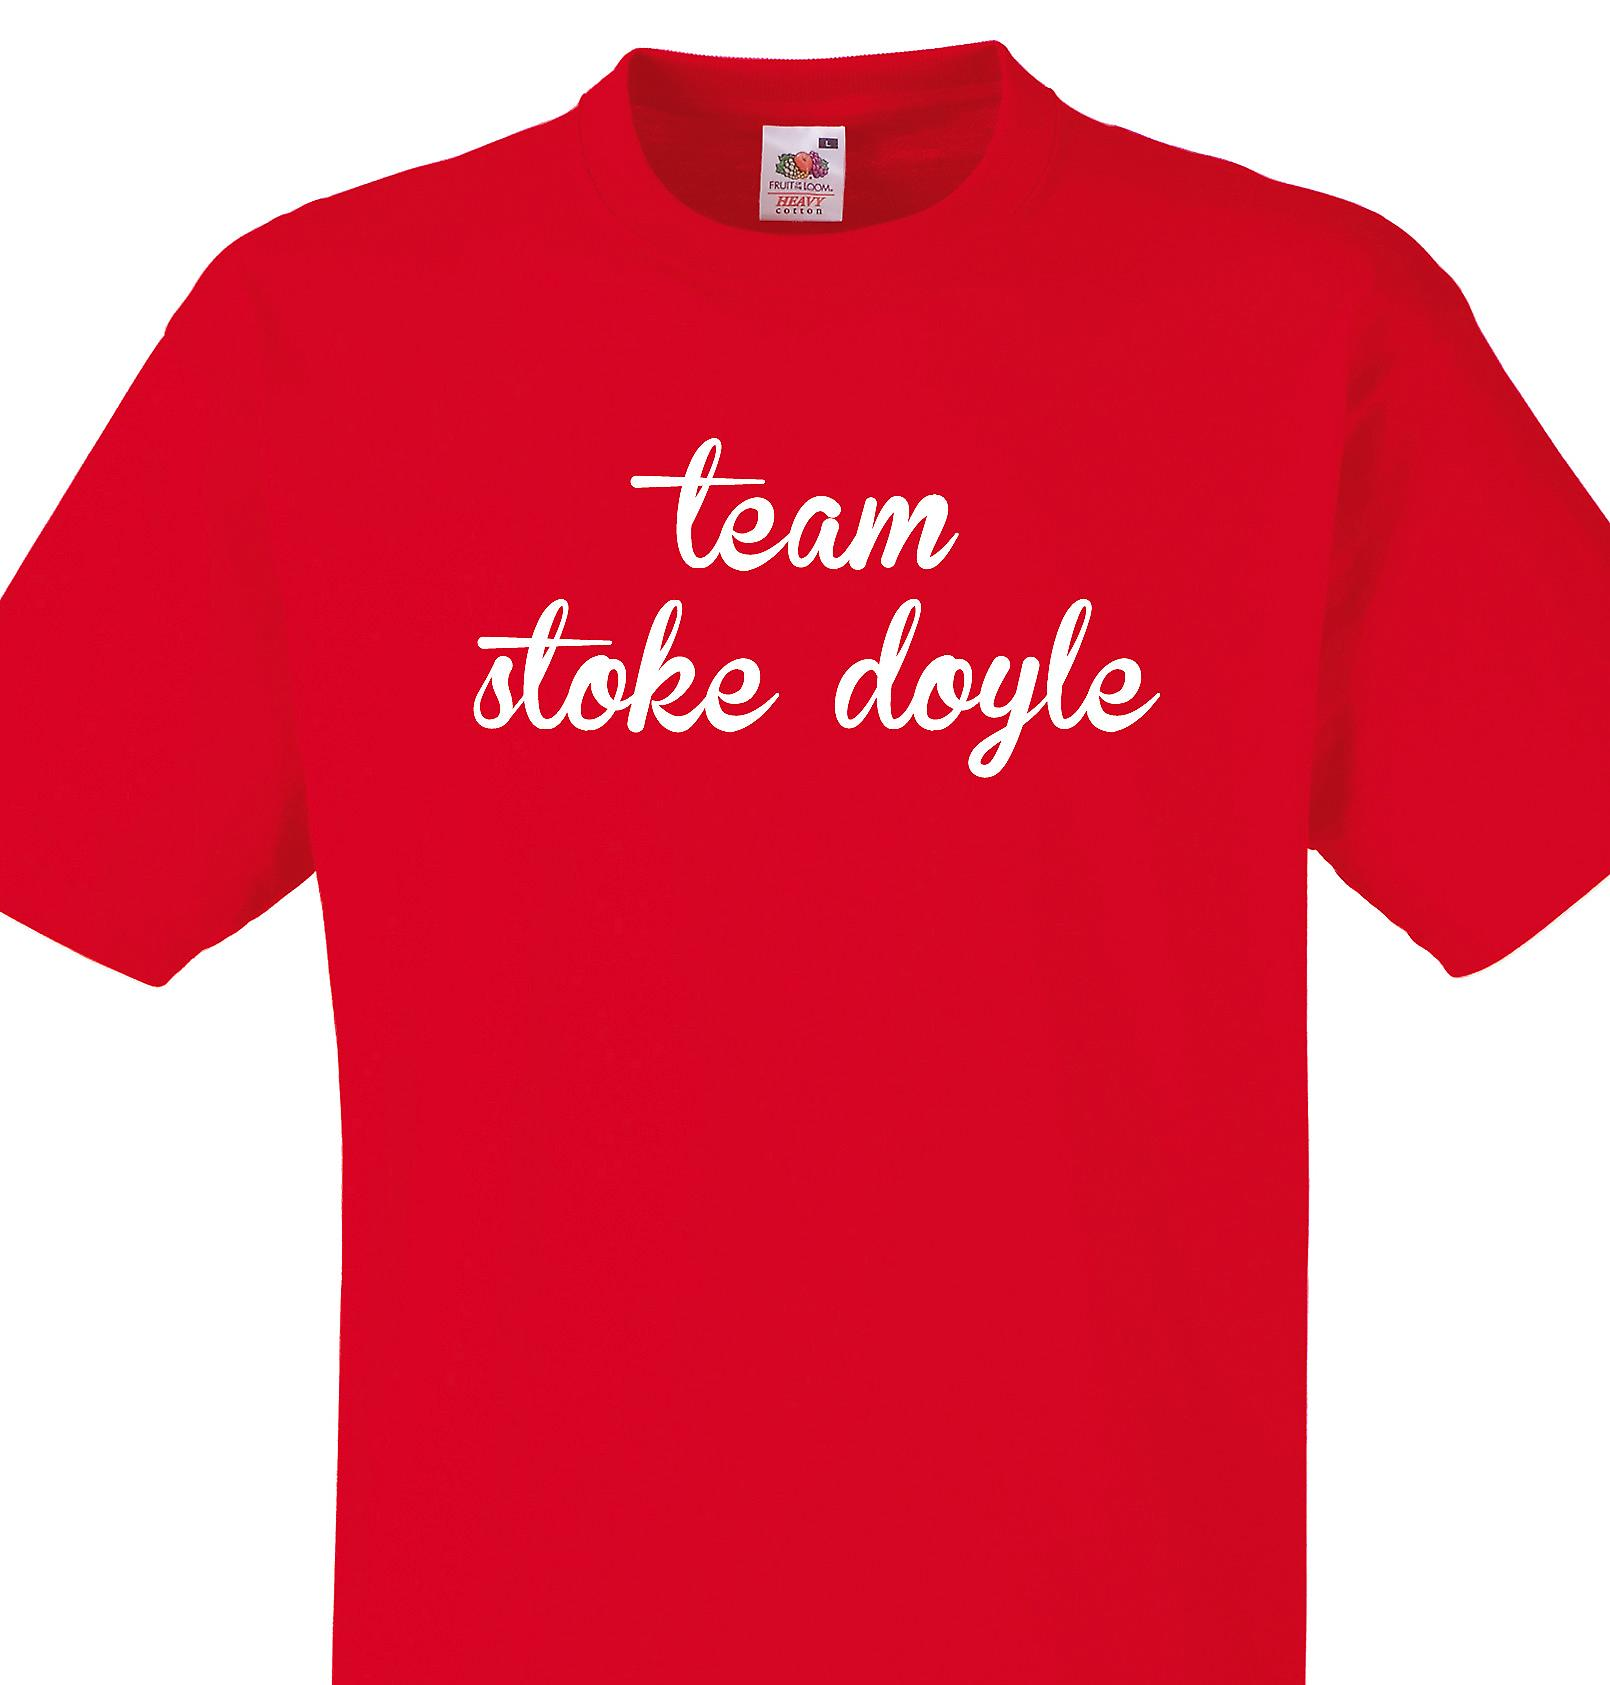 Team Stoke doyle Red T shirt